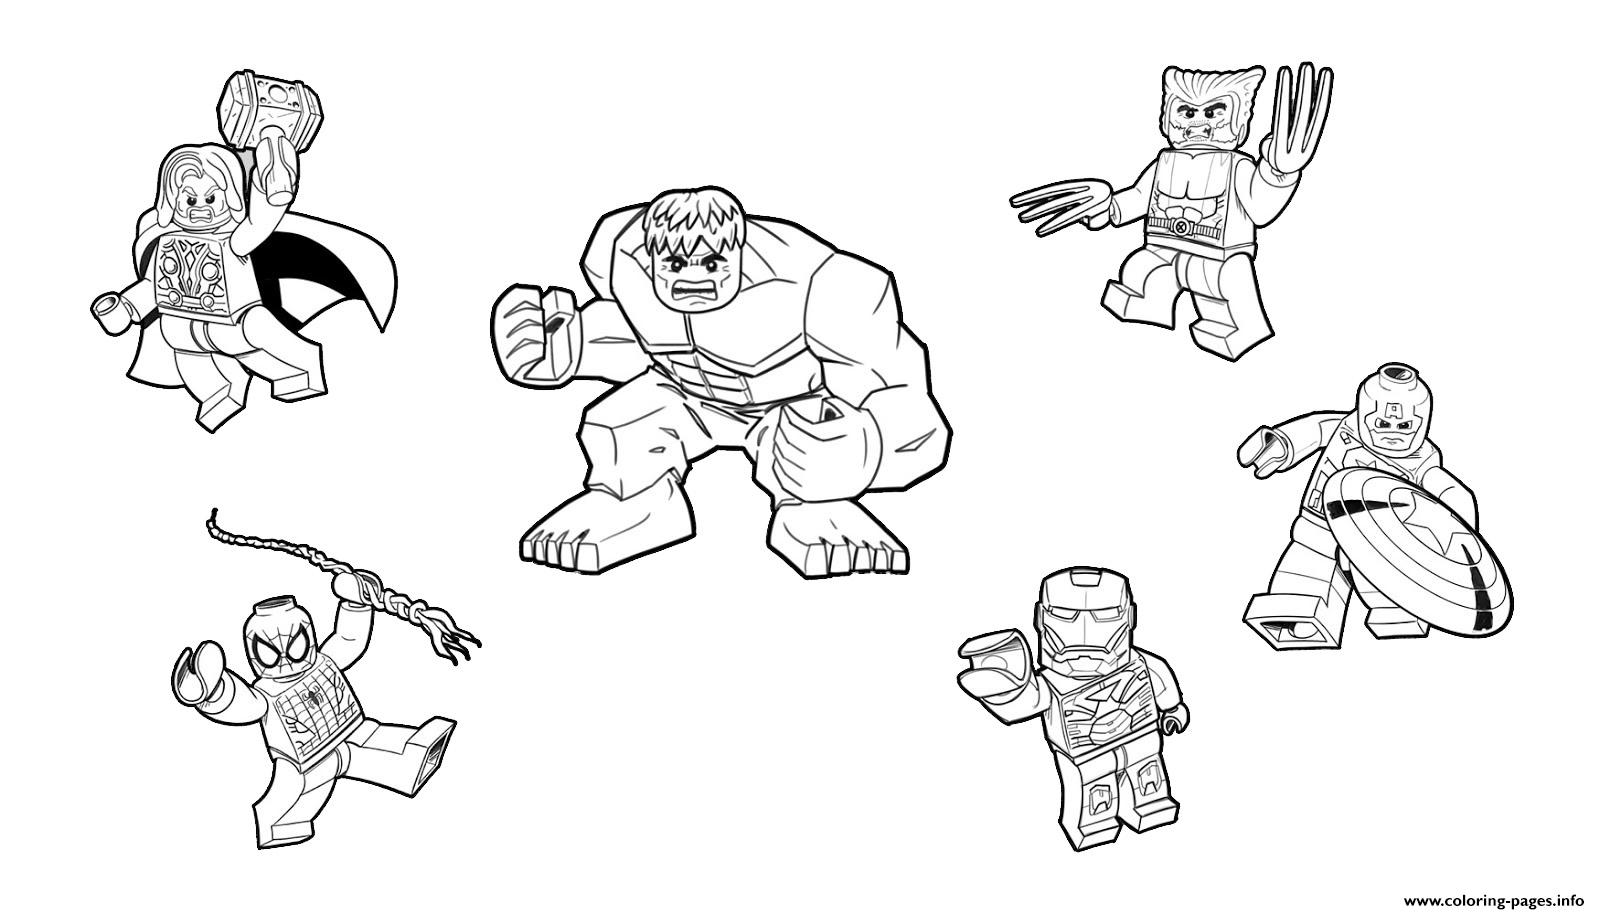 team lego marvel hulk ironman spiderman thor america wolverine coloring pages - Coloring Pages Lego Superheroes